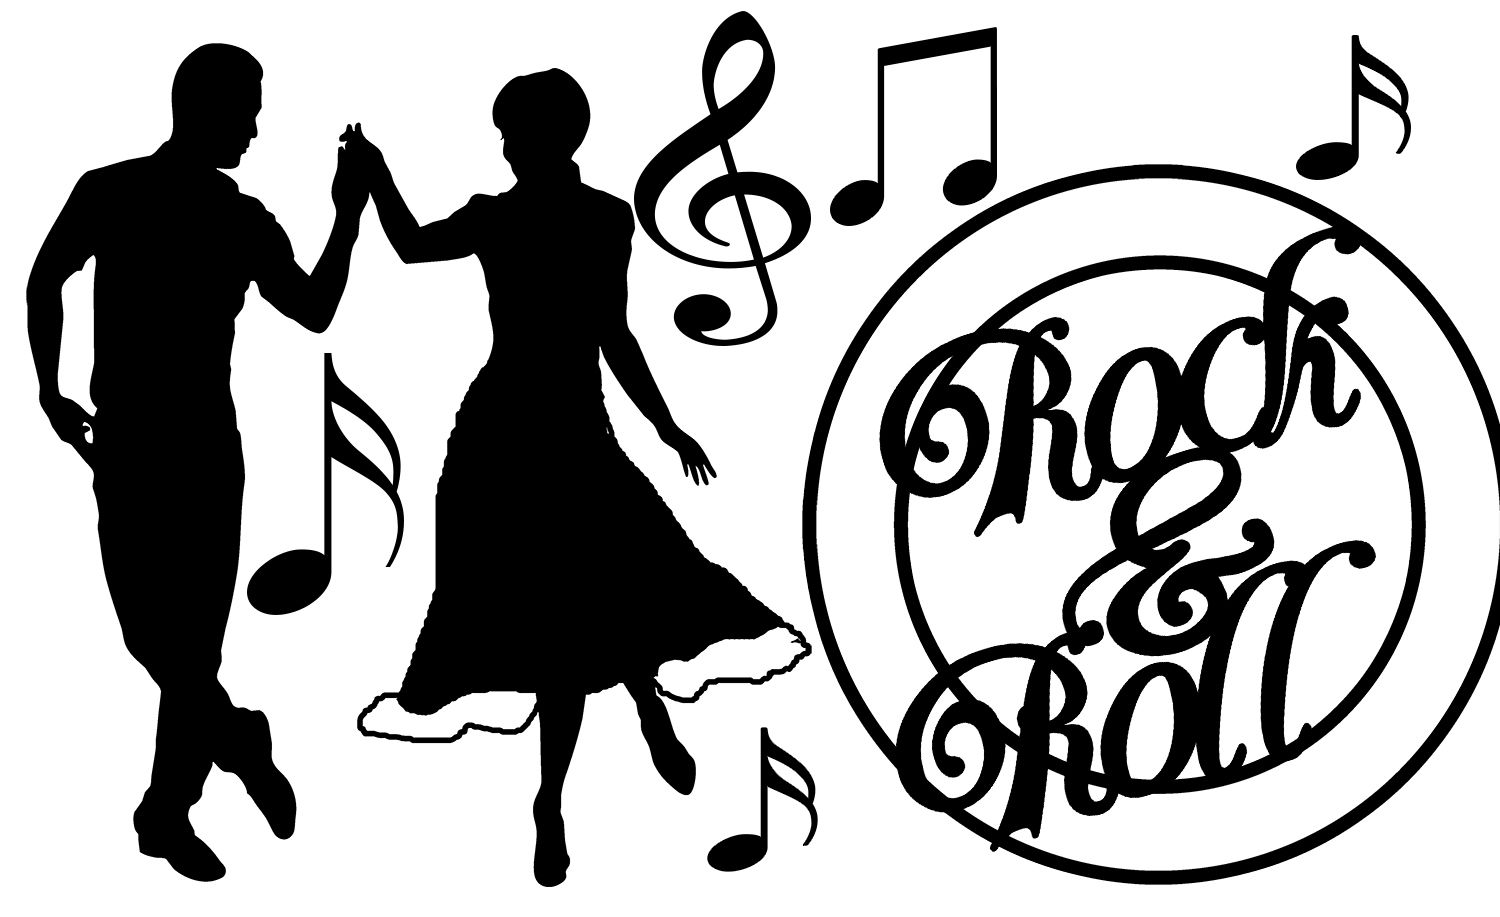 Rock n roll heaven clipart black and white clipart black and white download PICTURES OF ROCK N ROLL DANCERS FOR LOGO - Google Search ... clipart black and white download